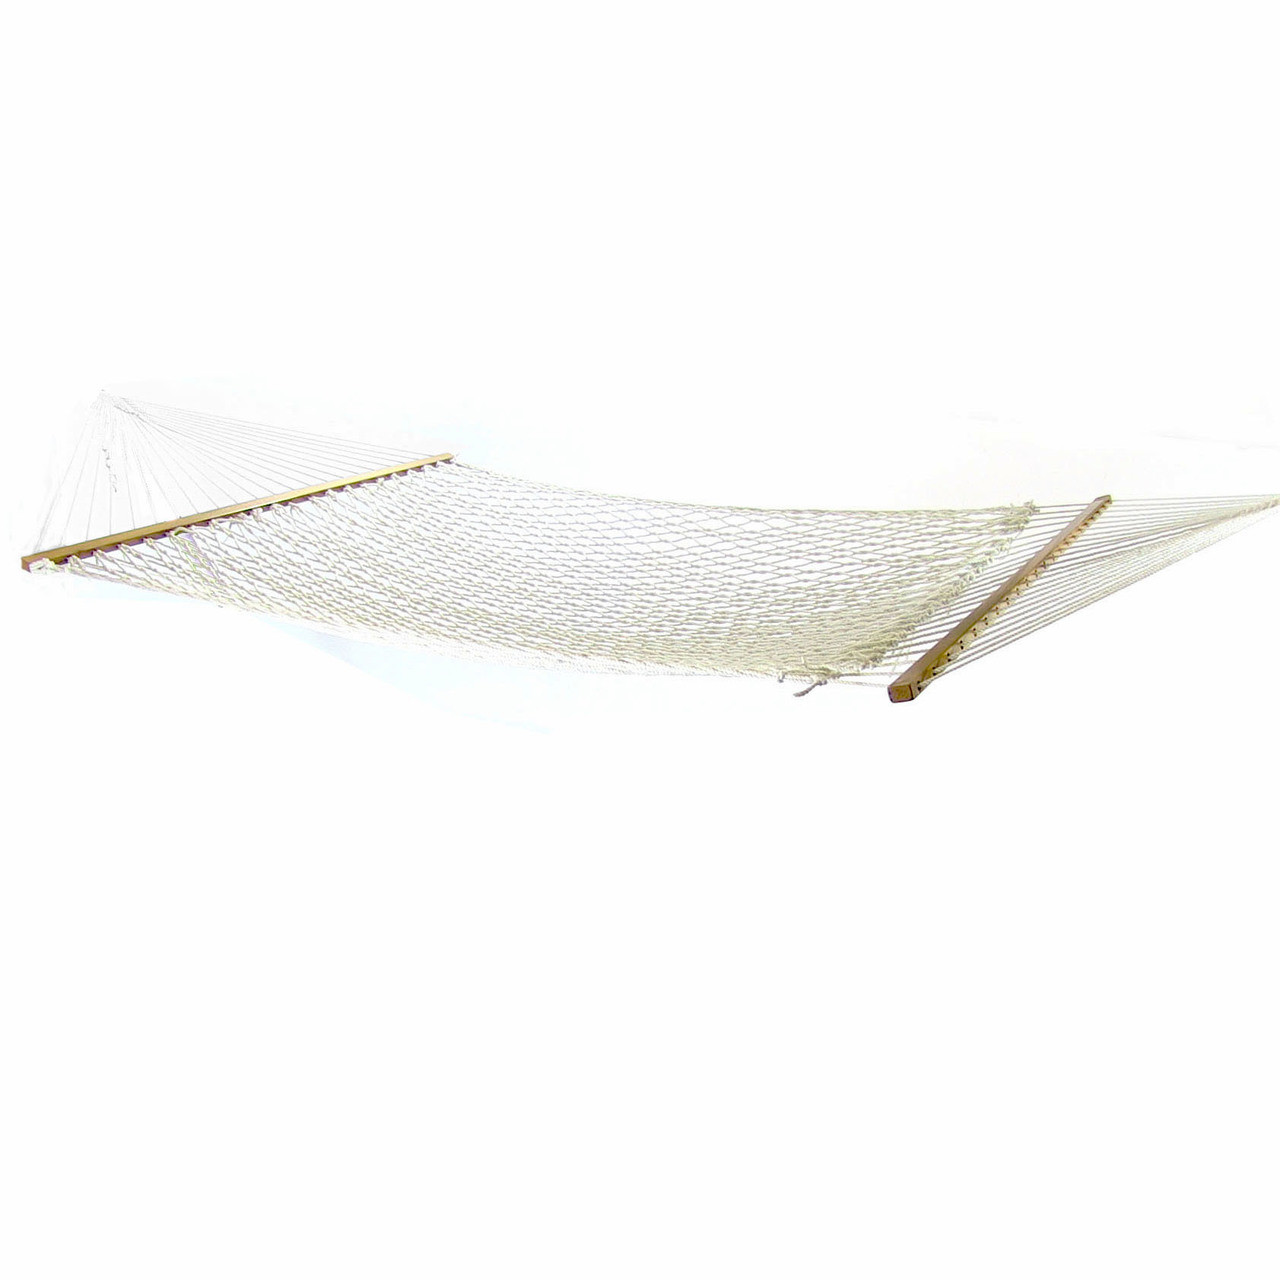 Sunnydaze Polyester Rope Hammock Spreader Bars LongWid Picture 767